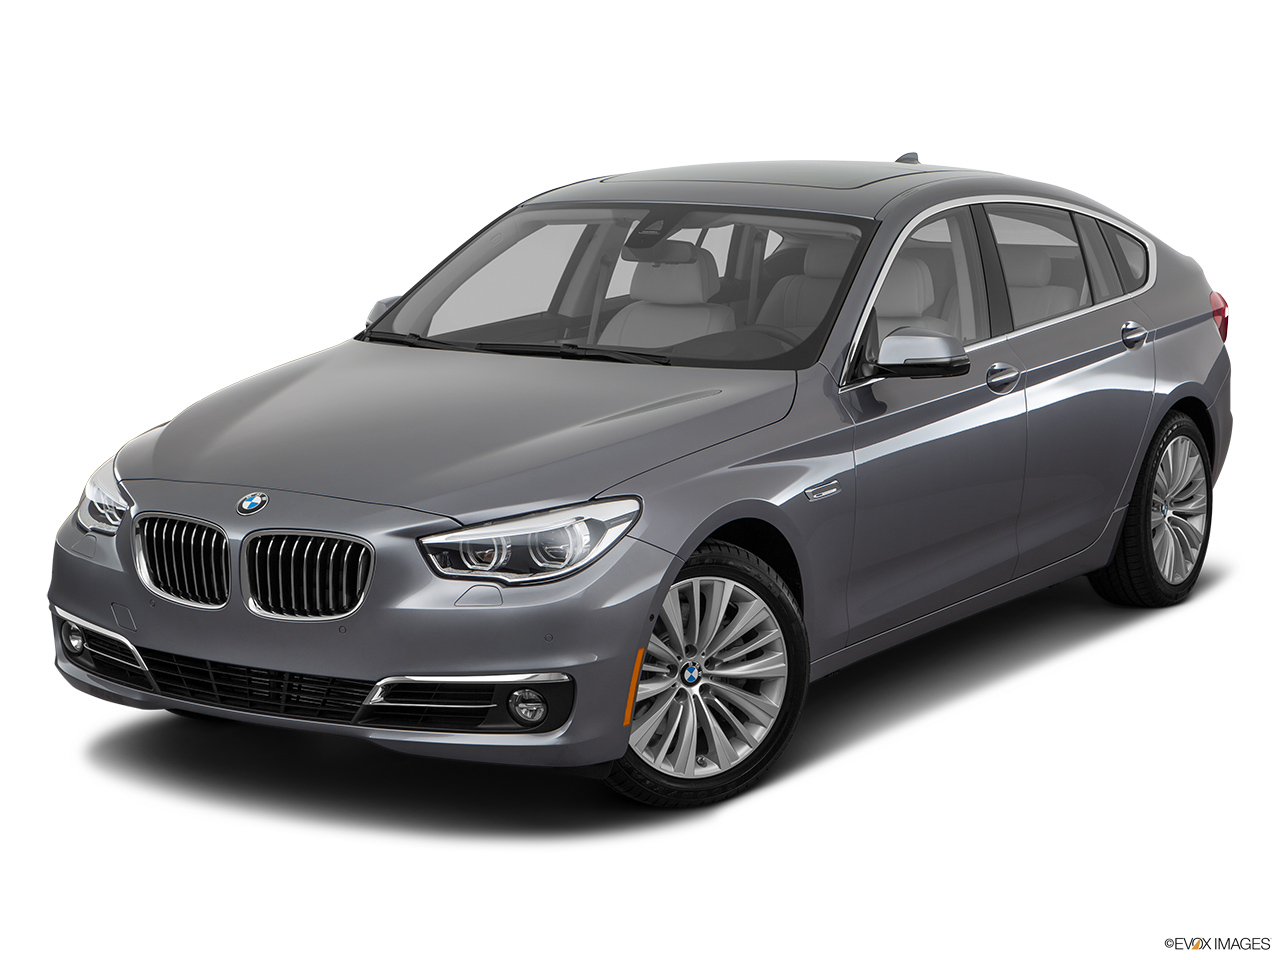 bmw 5 series gran turismo 2017 535i xdrive in uae new car prices specs reviews photos. Black Bedroom Furniture Sets. Home Design Ideas